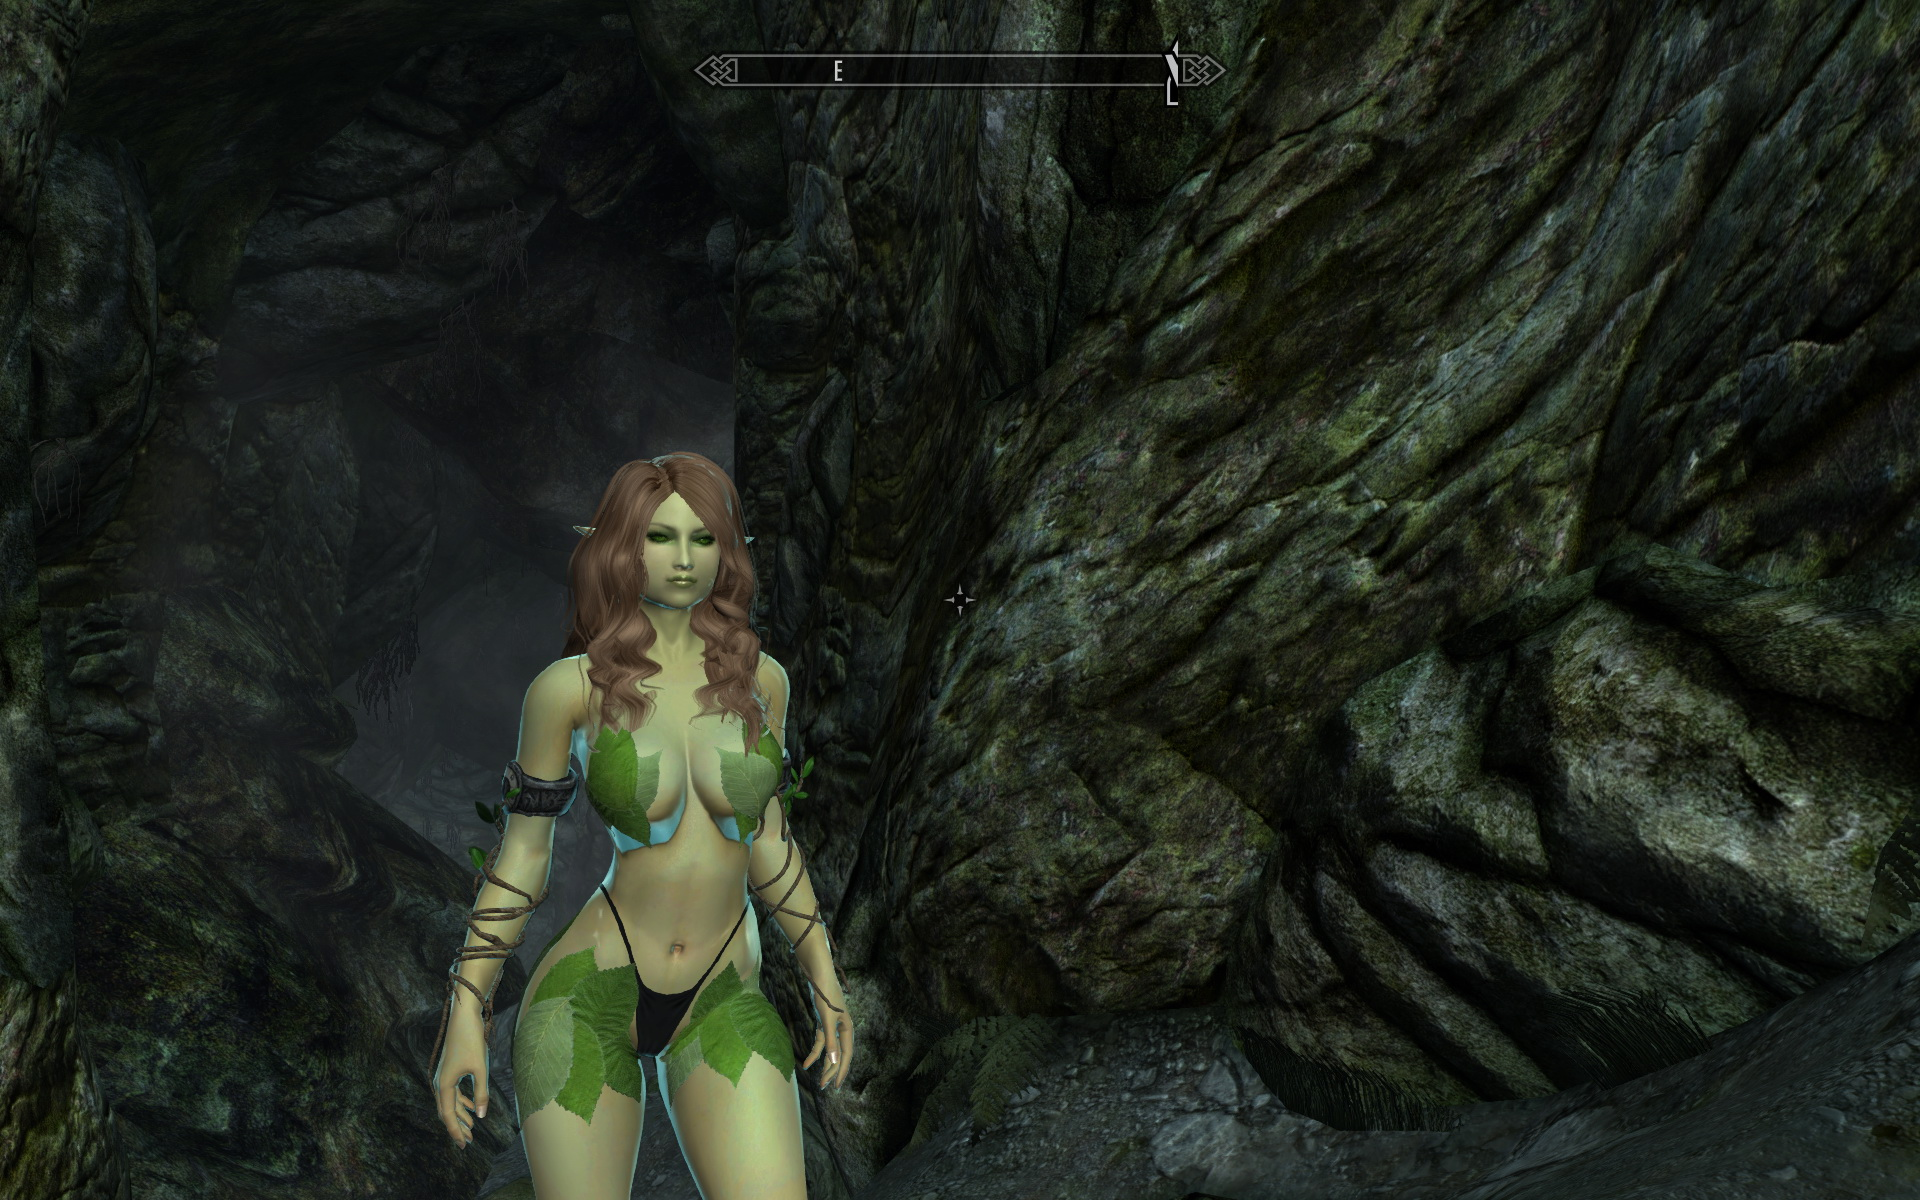 Morrowind boobs mod nudes images